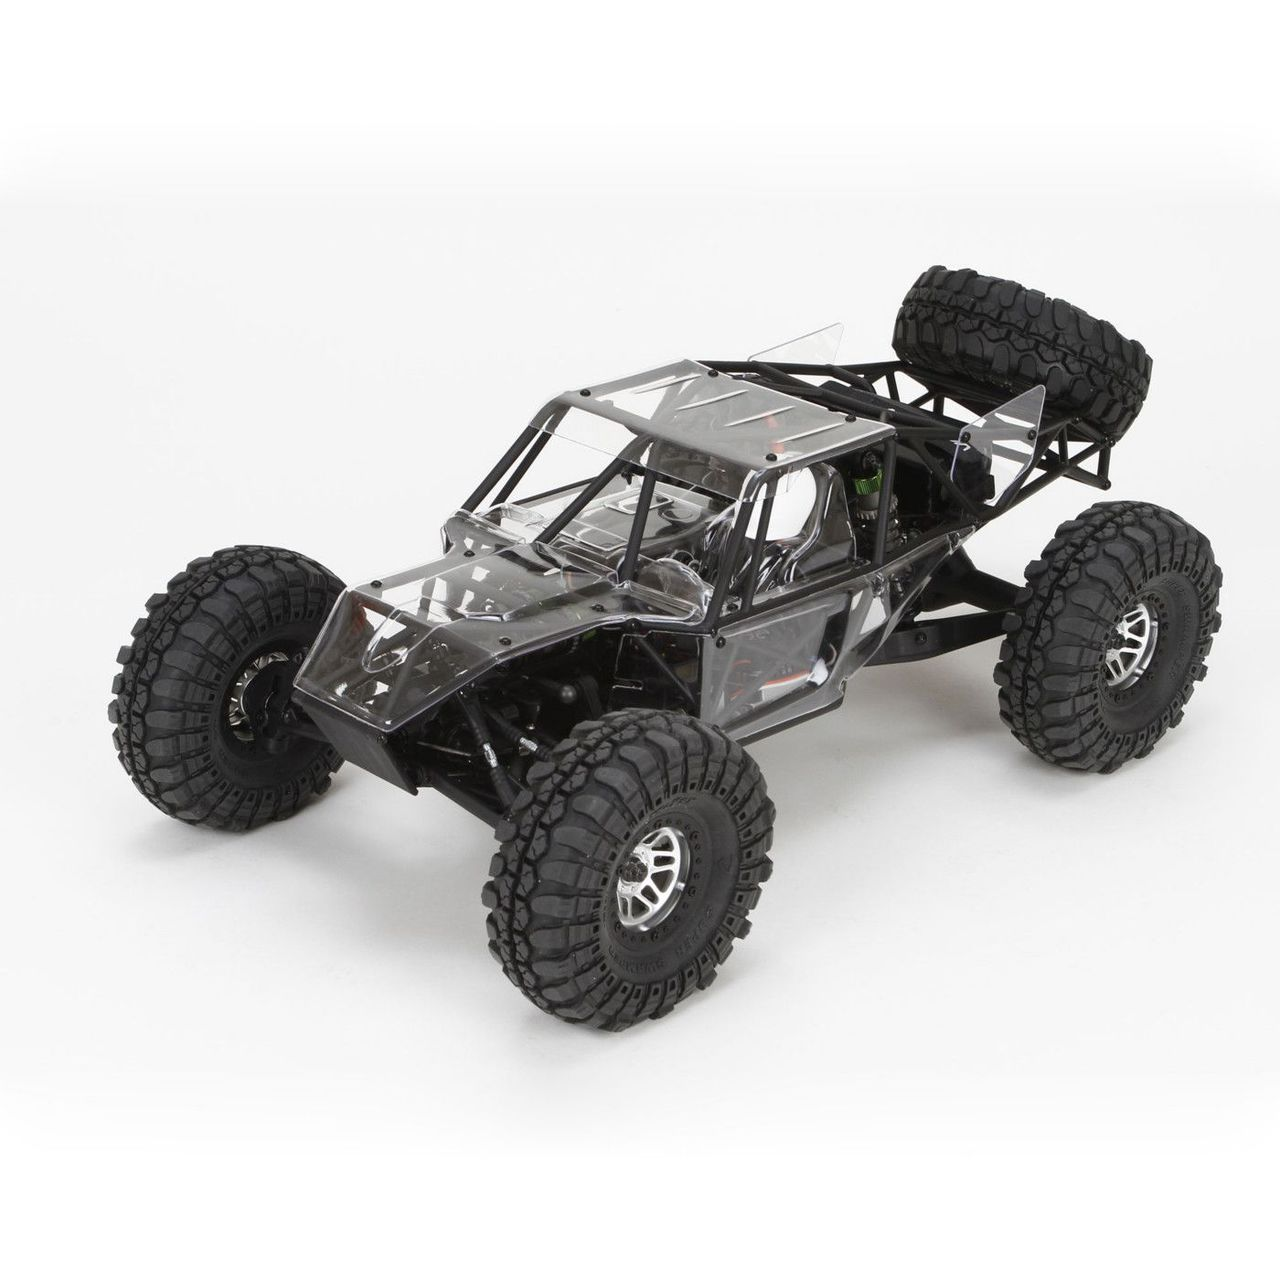 Vaterra 03001 Twin Hammers 1.9 Rock Racer Kit This is a Vaterra 03001 Twin Hammers 1.9 Rock Racer Kit. Named for a pair of infamous off-road trails in Californiaüfs Mojave Desert, the Twin HammersR rock racer epitomizes the spirit of 4WD adventure. This kit version lets experienced RC drivers build the vehicle to their specifications, using the electronics and power system of their choice. It also takes the performance of this proven platform to the next level by including the option parts that have been most popular with the RTR version. These would include options like licensed Interco Super Swamper Tires, a front locker, heavy duty front axle outdrives and more. Its key features are: 4-Wheel Drive Shift-on-the-fly, two-speed transmission Metal transmission gears Metal gear differentials 4-Link rear suspension Threaded-body aluminum shocks Licensed Interco Super Swamper tires Independent cantilever front suspension Metal 12mm hexes Dual position battery tray Heavy duty outdrives Front differential locker Front and rear swaybars Clear body panels GenRight? decal sheet Specifications: Motor Size: 540 Required Approximate Assembly Time: 10?15 Hours Ball Bearings: Yes Batteries: Not included, Not included Body: Unpainted Clear Polycarbonate Panels (flat hood and roof) w/ GenRight Decals, Unpainted Clear Polycarbonate Panels (flat hood and roof) w/ GenRight Decals Charger: Not included Chassis: Molded Composite Completion Level: Kit Drivetrain: 4WD Final Drive Ratio: High Gear - 18.1:1 Low Gear - 32.1:1, High Gear - 18.1:1 Low Gear - 32.1:1 Front Track: 10.00 in (254mm), 10.00 in (254mm) Gear Pitch: 48-Pitch Ground Clearance: 2.25 in (57mm), 2.25 in (57mm) Internal Gear Ratio: High Gear - 2.27:1 Low Gear - 4.05:1, High Gear - 2.27:1 Low Gear - 4.05:1 Pinion: 28T (recommended) Rear Track: 10.00 in (254mm), 10.00 in (254mm) Recommended Environment: Off-Road Servos Included: N Shock Type: Aluminum Oil Filled Coil-over Size/Scale: 1/10 Speed Control Included: N Spur Gea